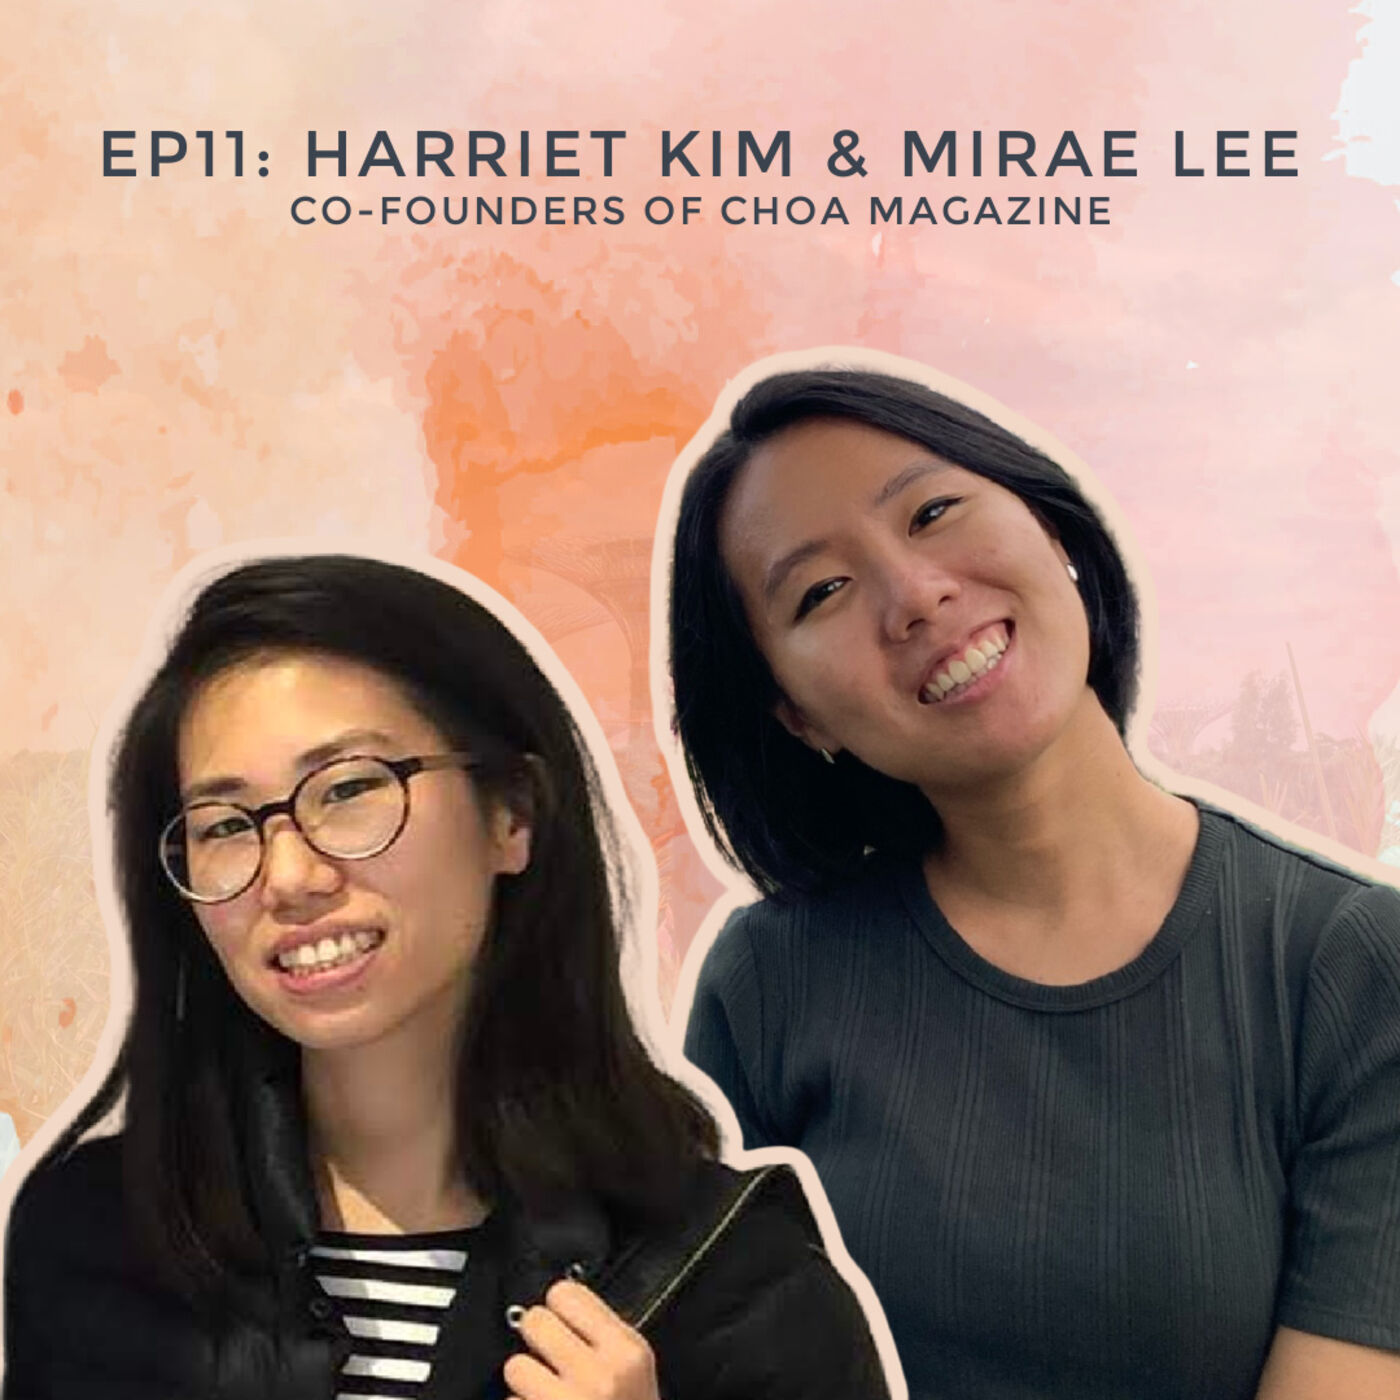 Creating a Digital Magazine for Korean Stories with Harriet Kim & Mirae Lee, Co-founders of Choa